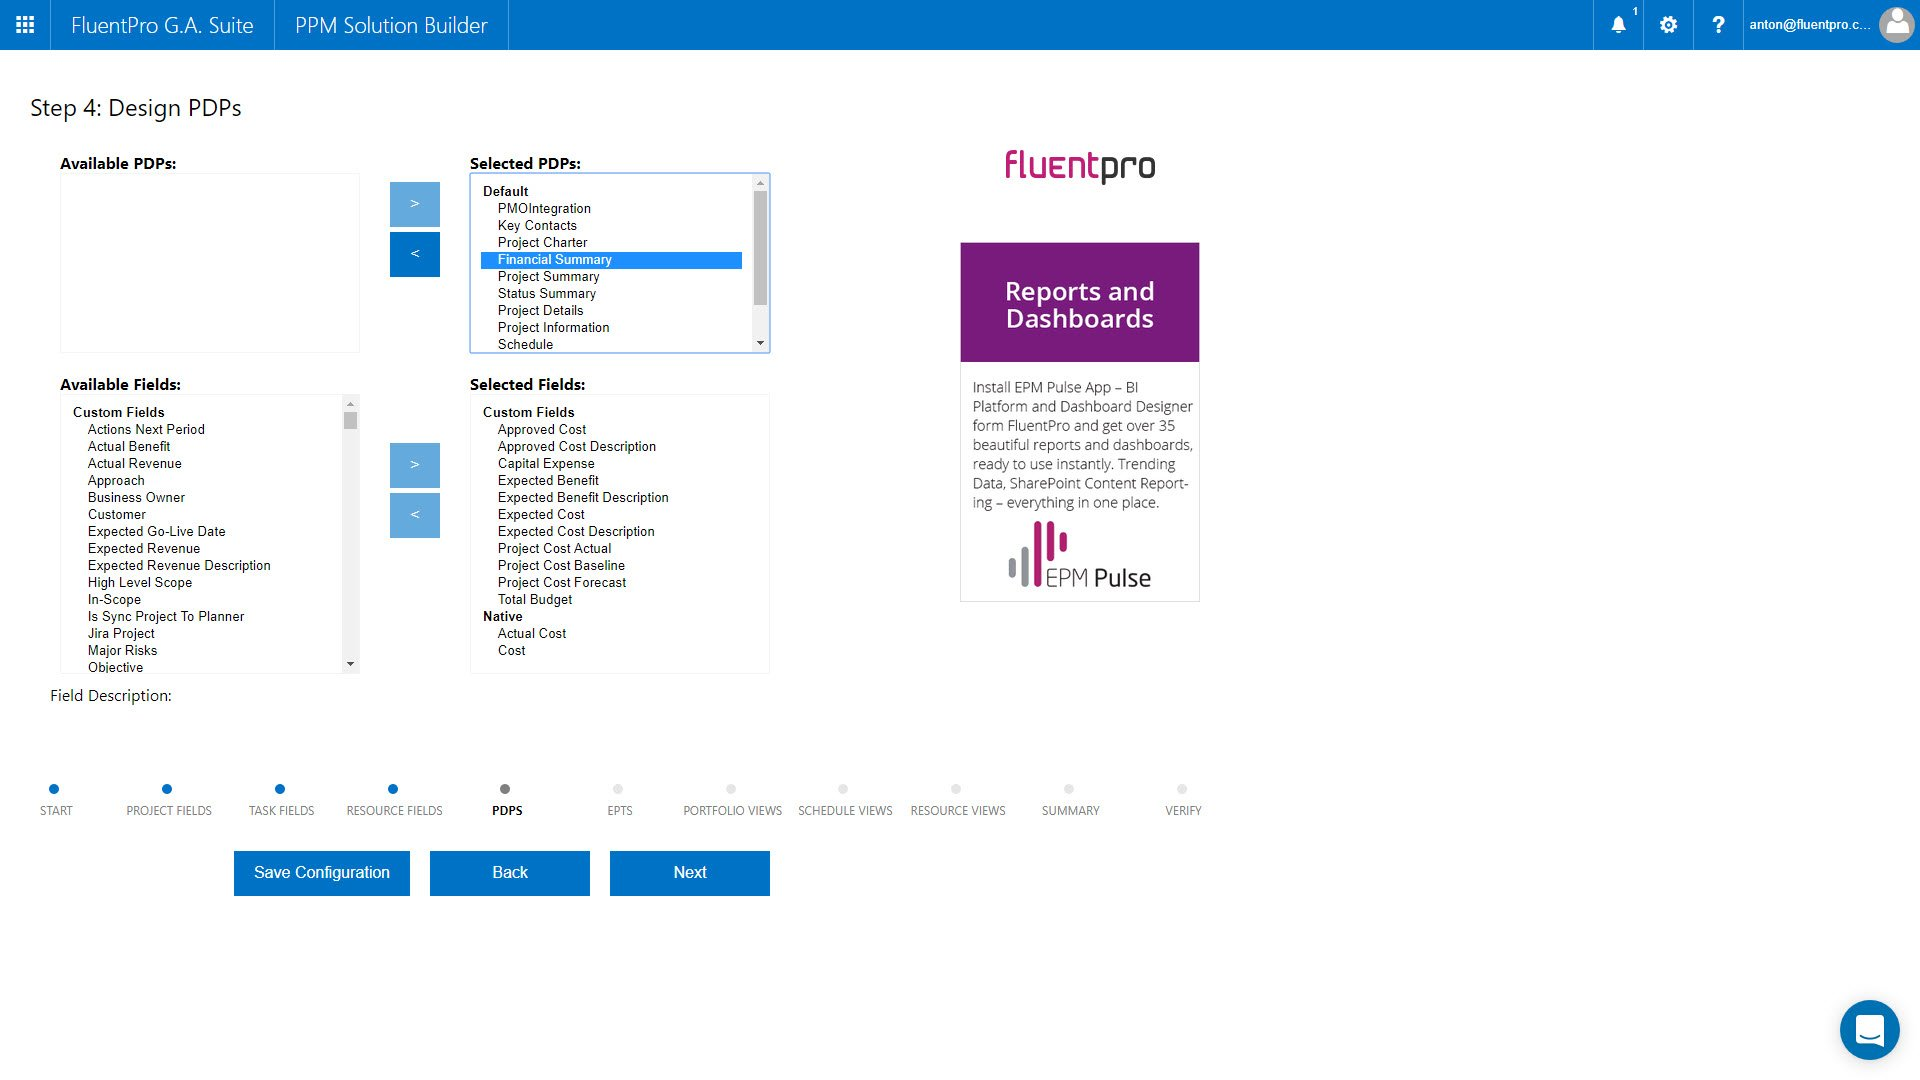 FluentPro G.A. Suite PPM Solution Builder PDPs